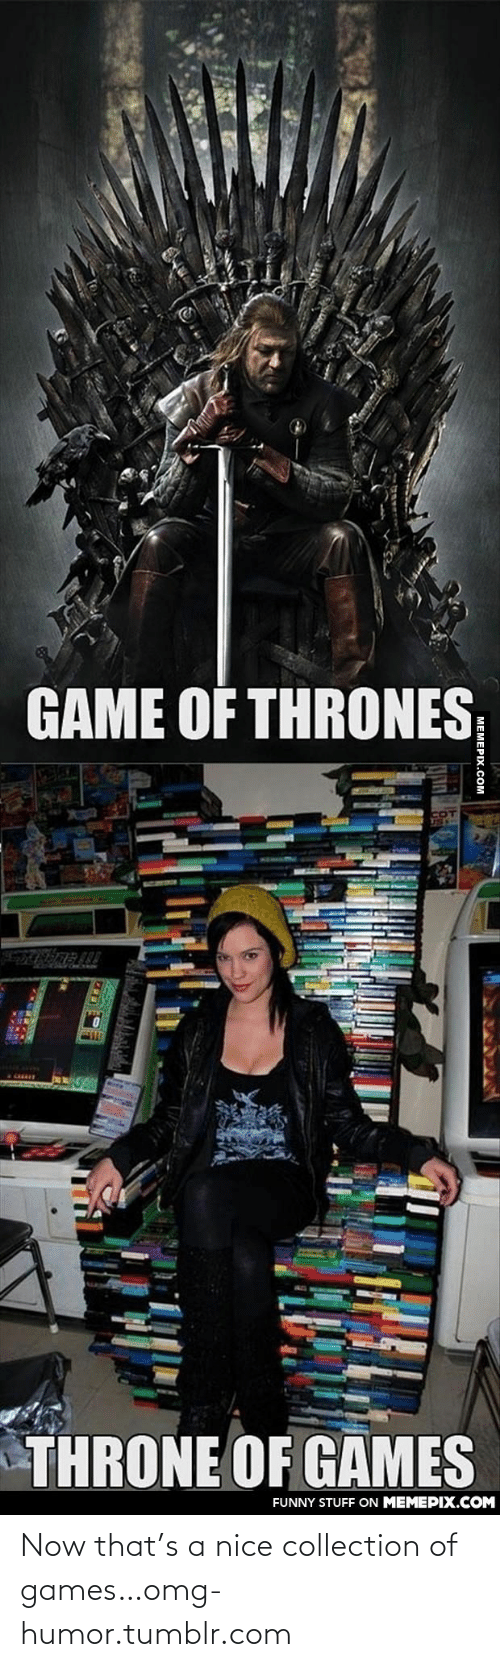 Game of Thrones: GAME OF THRONES  THRONE OF GAMES  FUNNY STUFF ON MEMEPIX.COM  MEMEPIX.COM Now that's a nice collection of games…omg-humor.tumblr.com